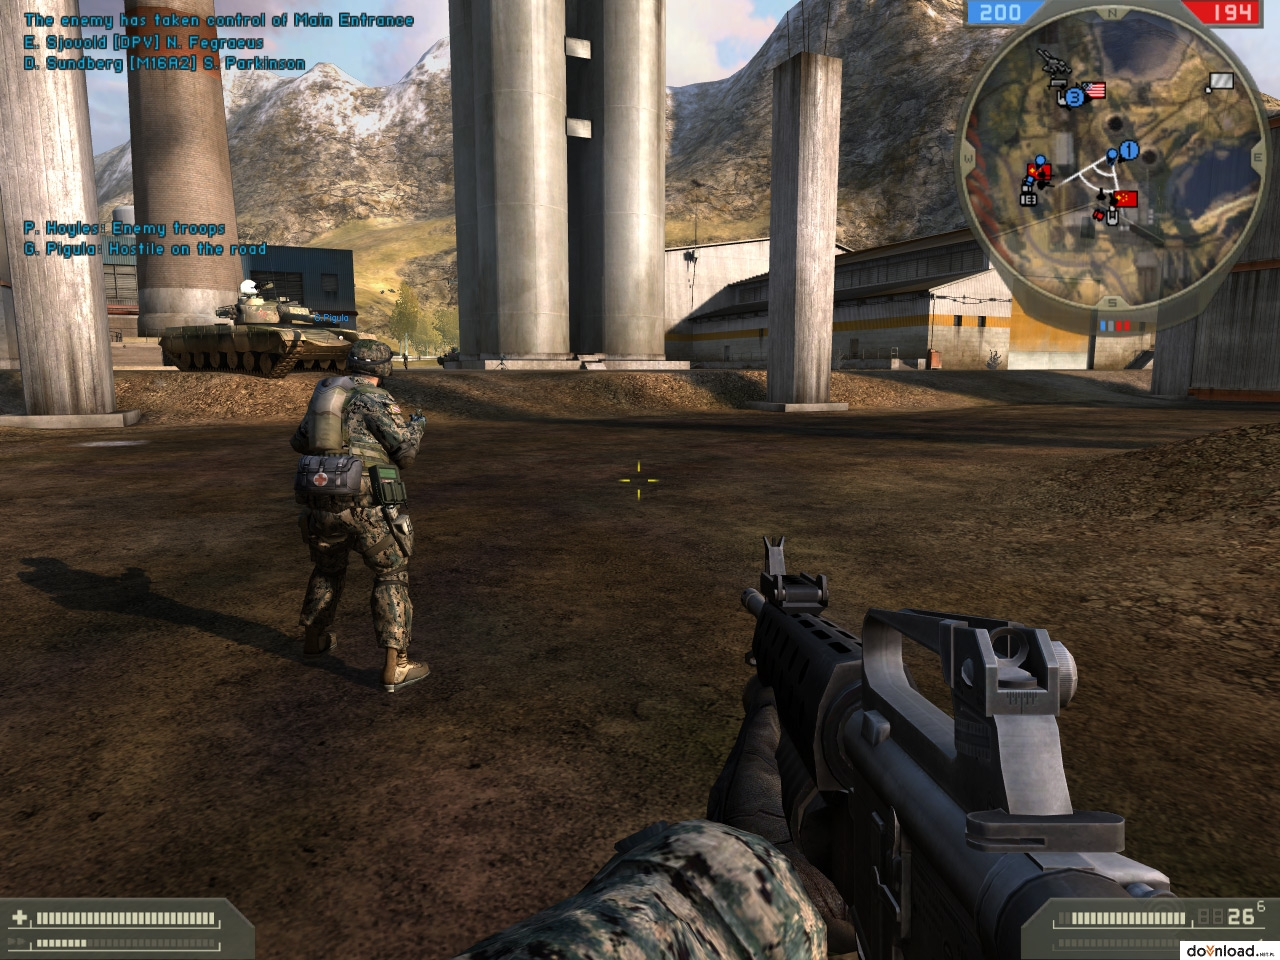 Battlefield 2 Game Free Download Full Version For Pc